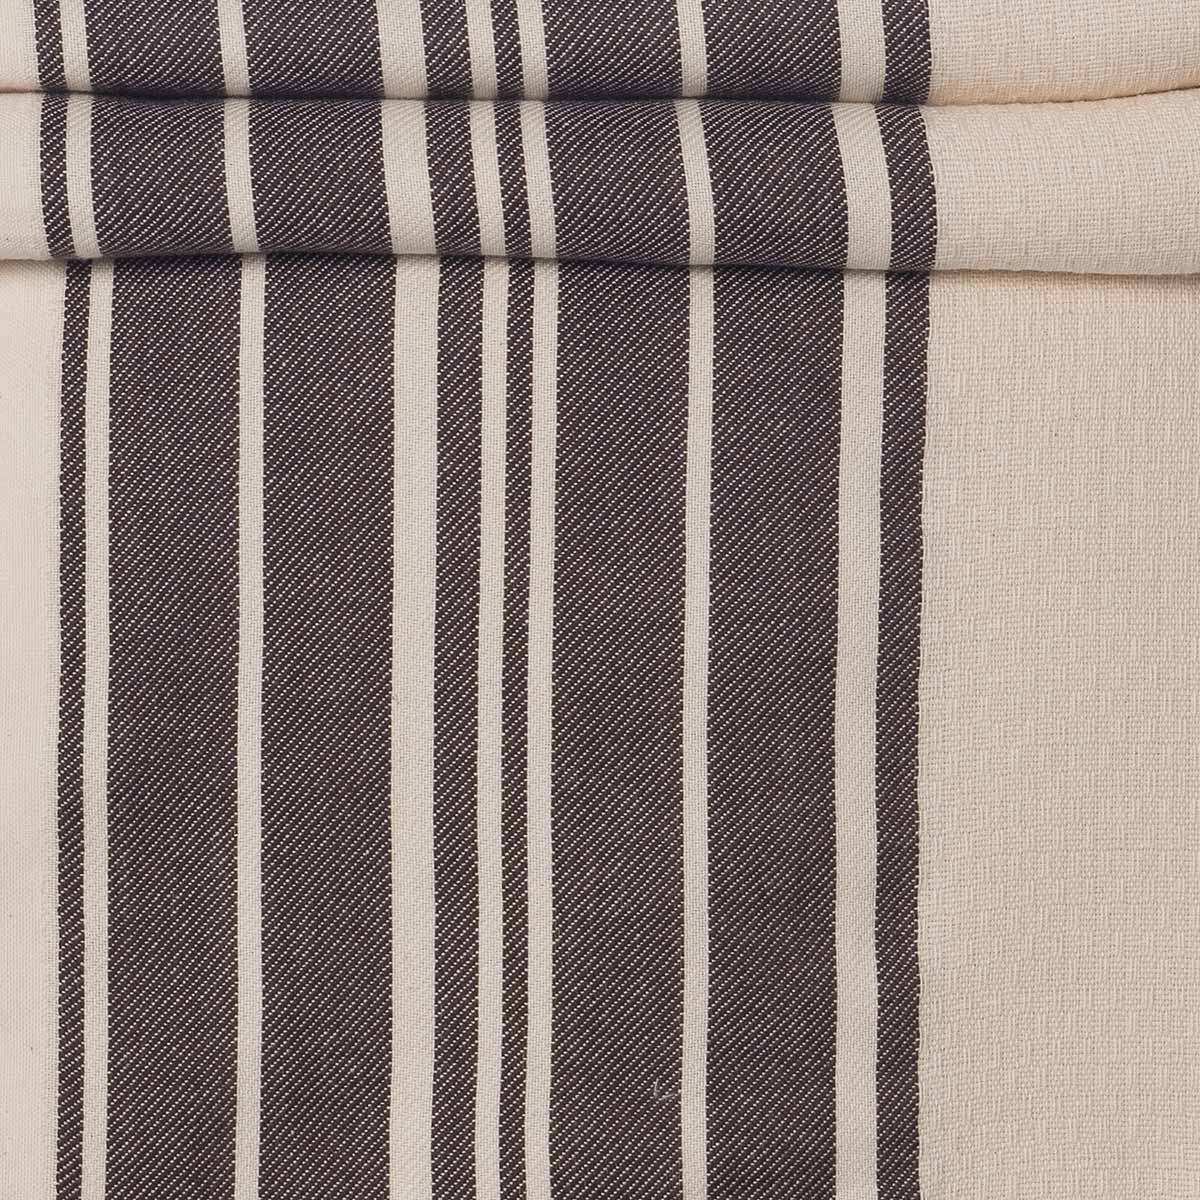 Throw Mykonos - Brown Vertical Stripes